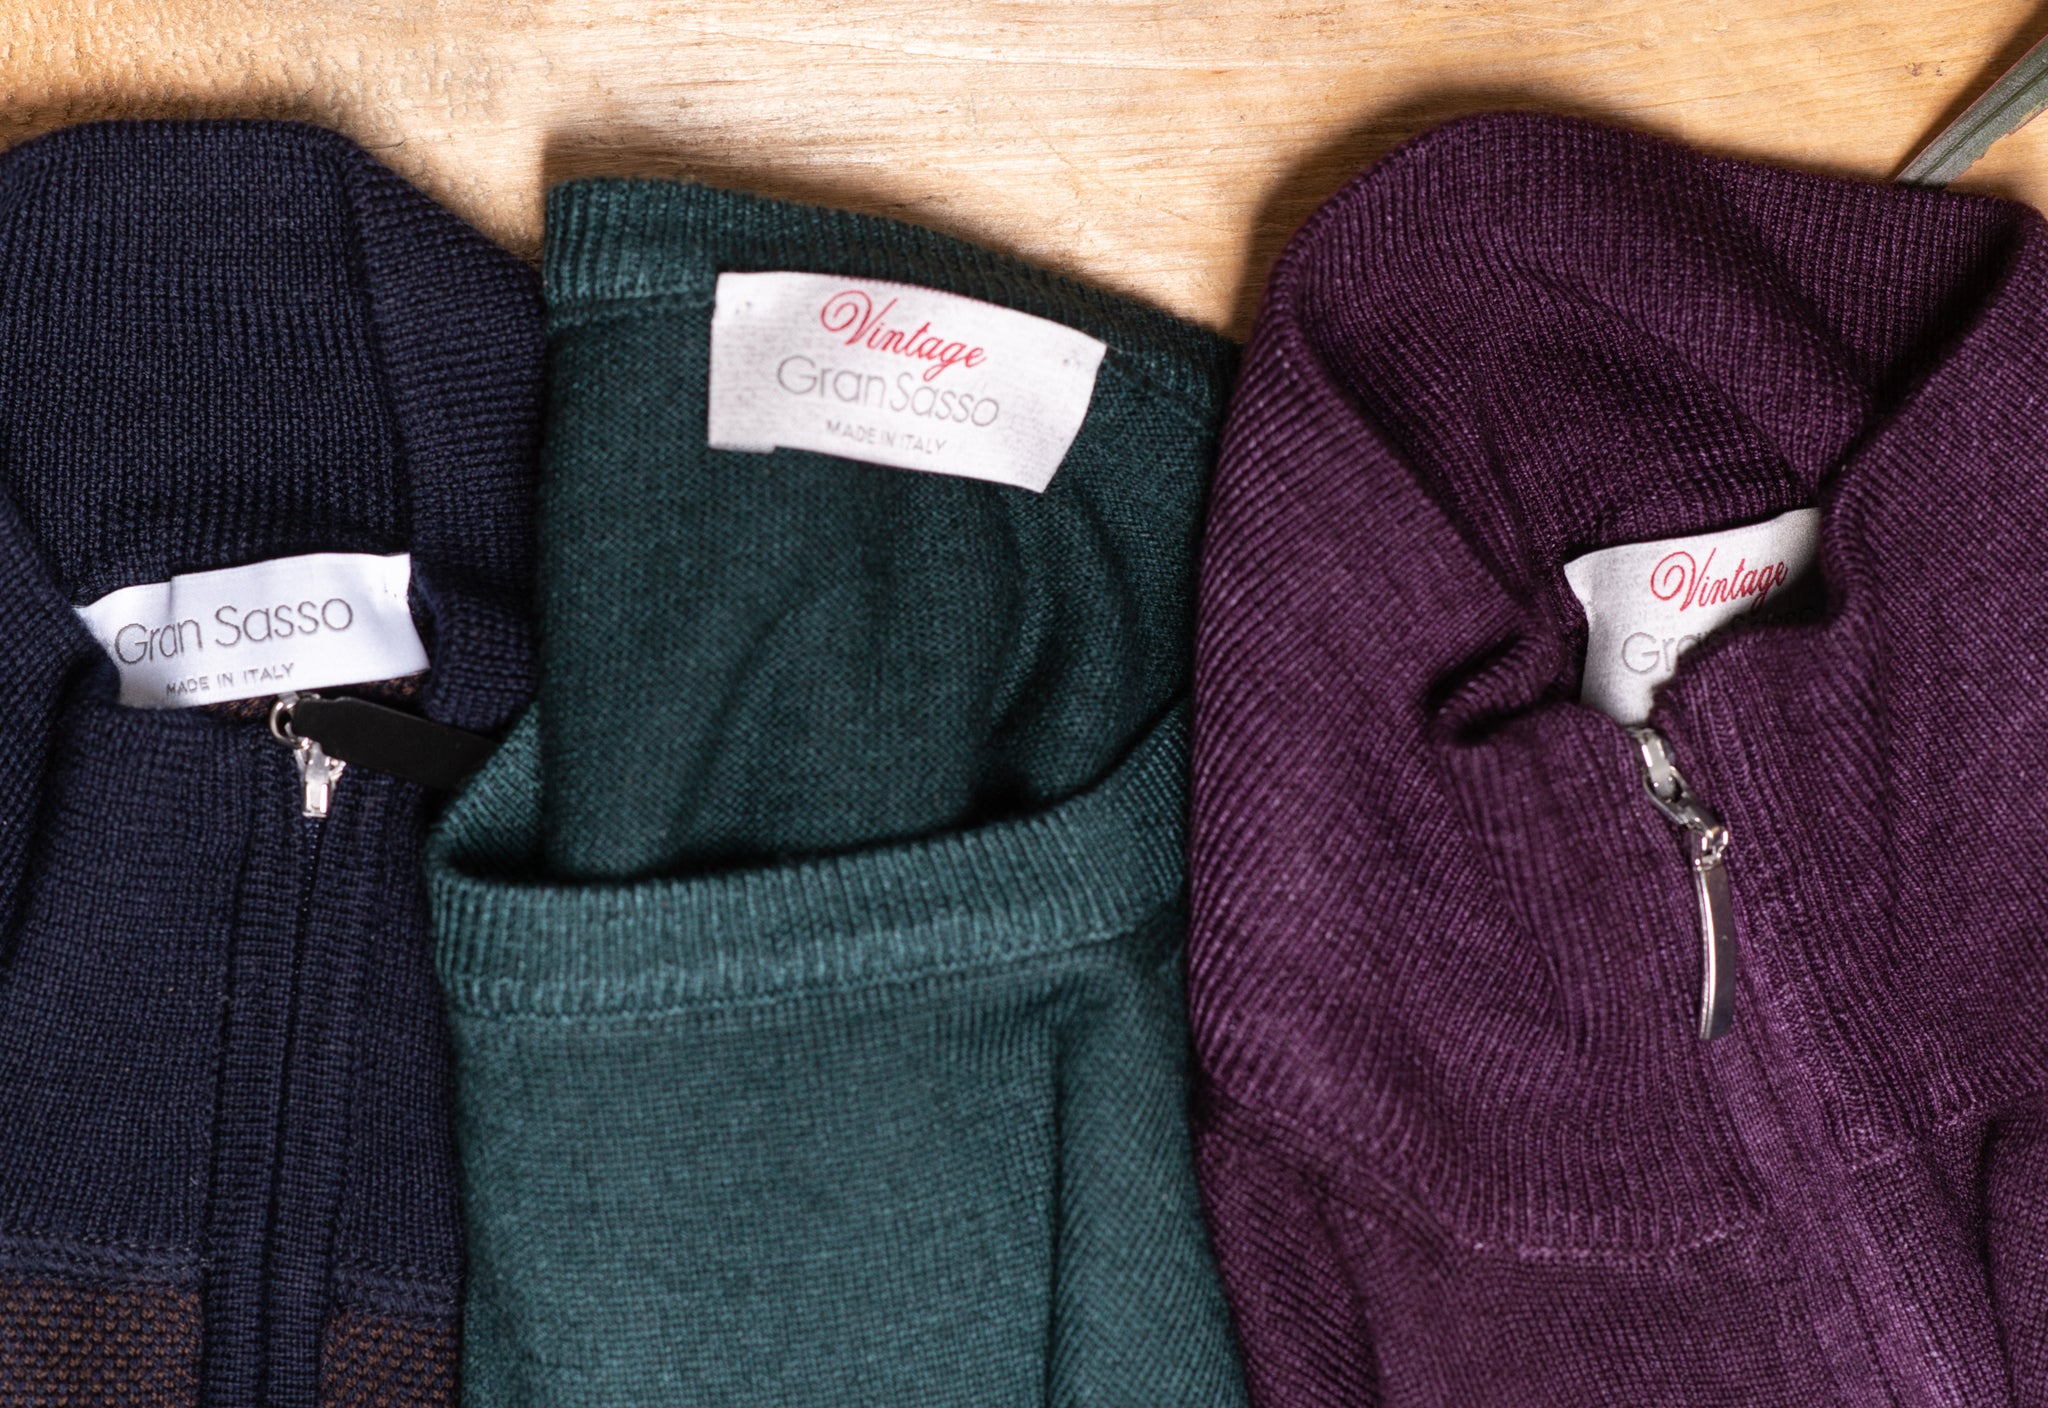 Navy, teal, and burgundy gran sasso sweaters